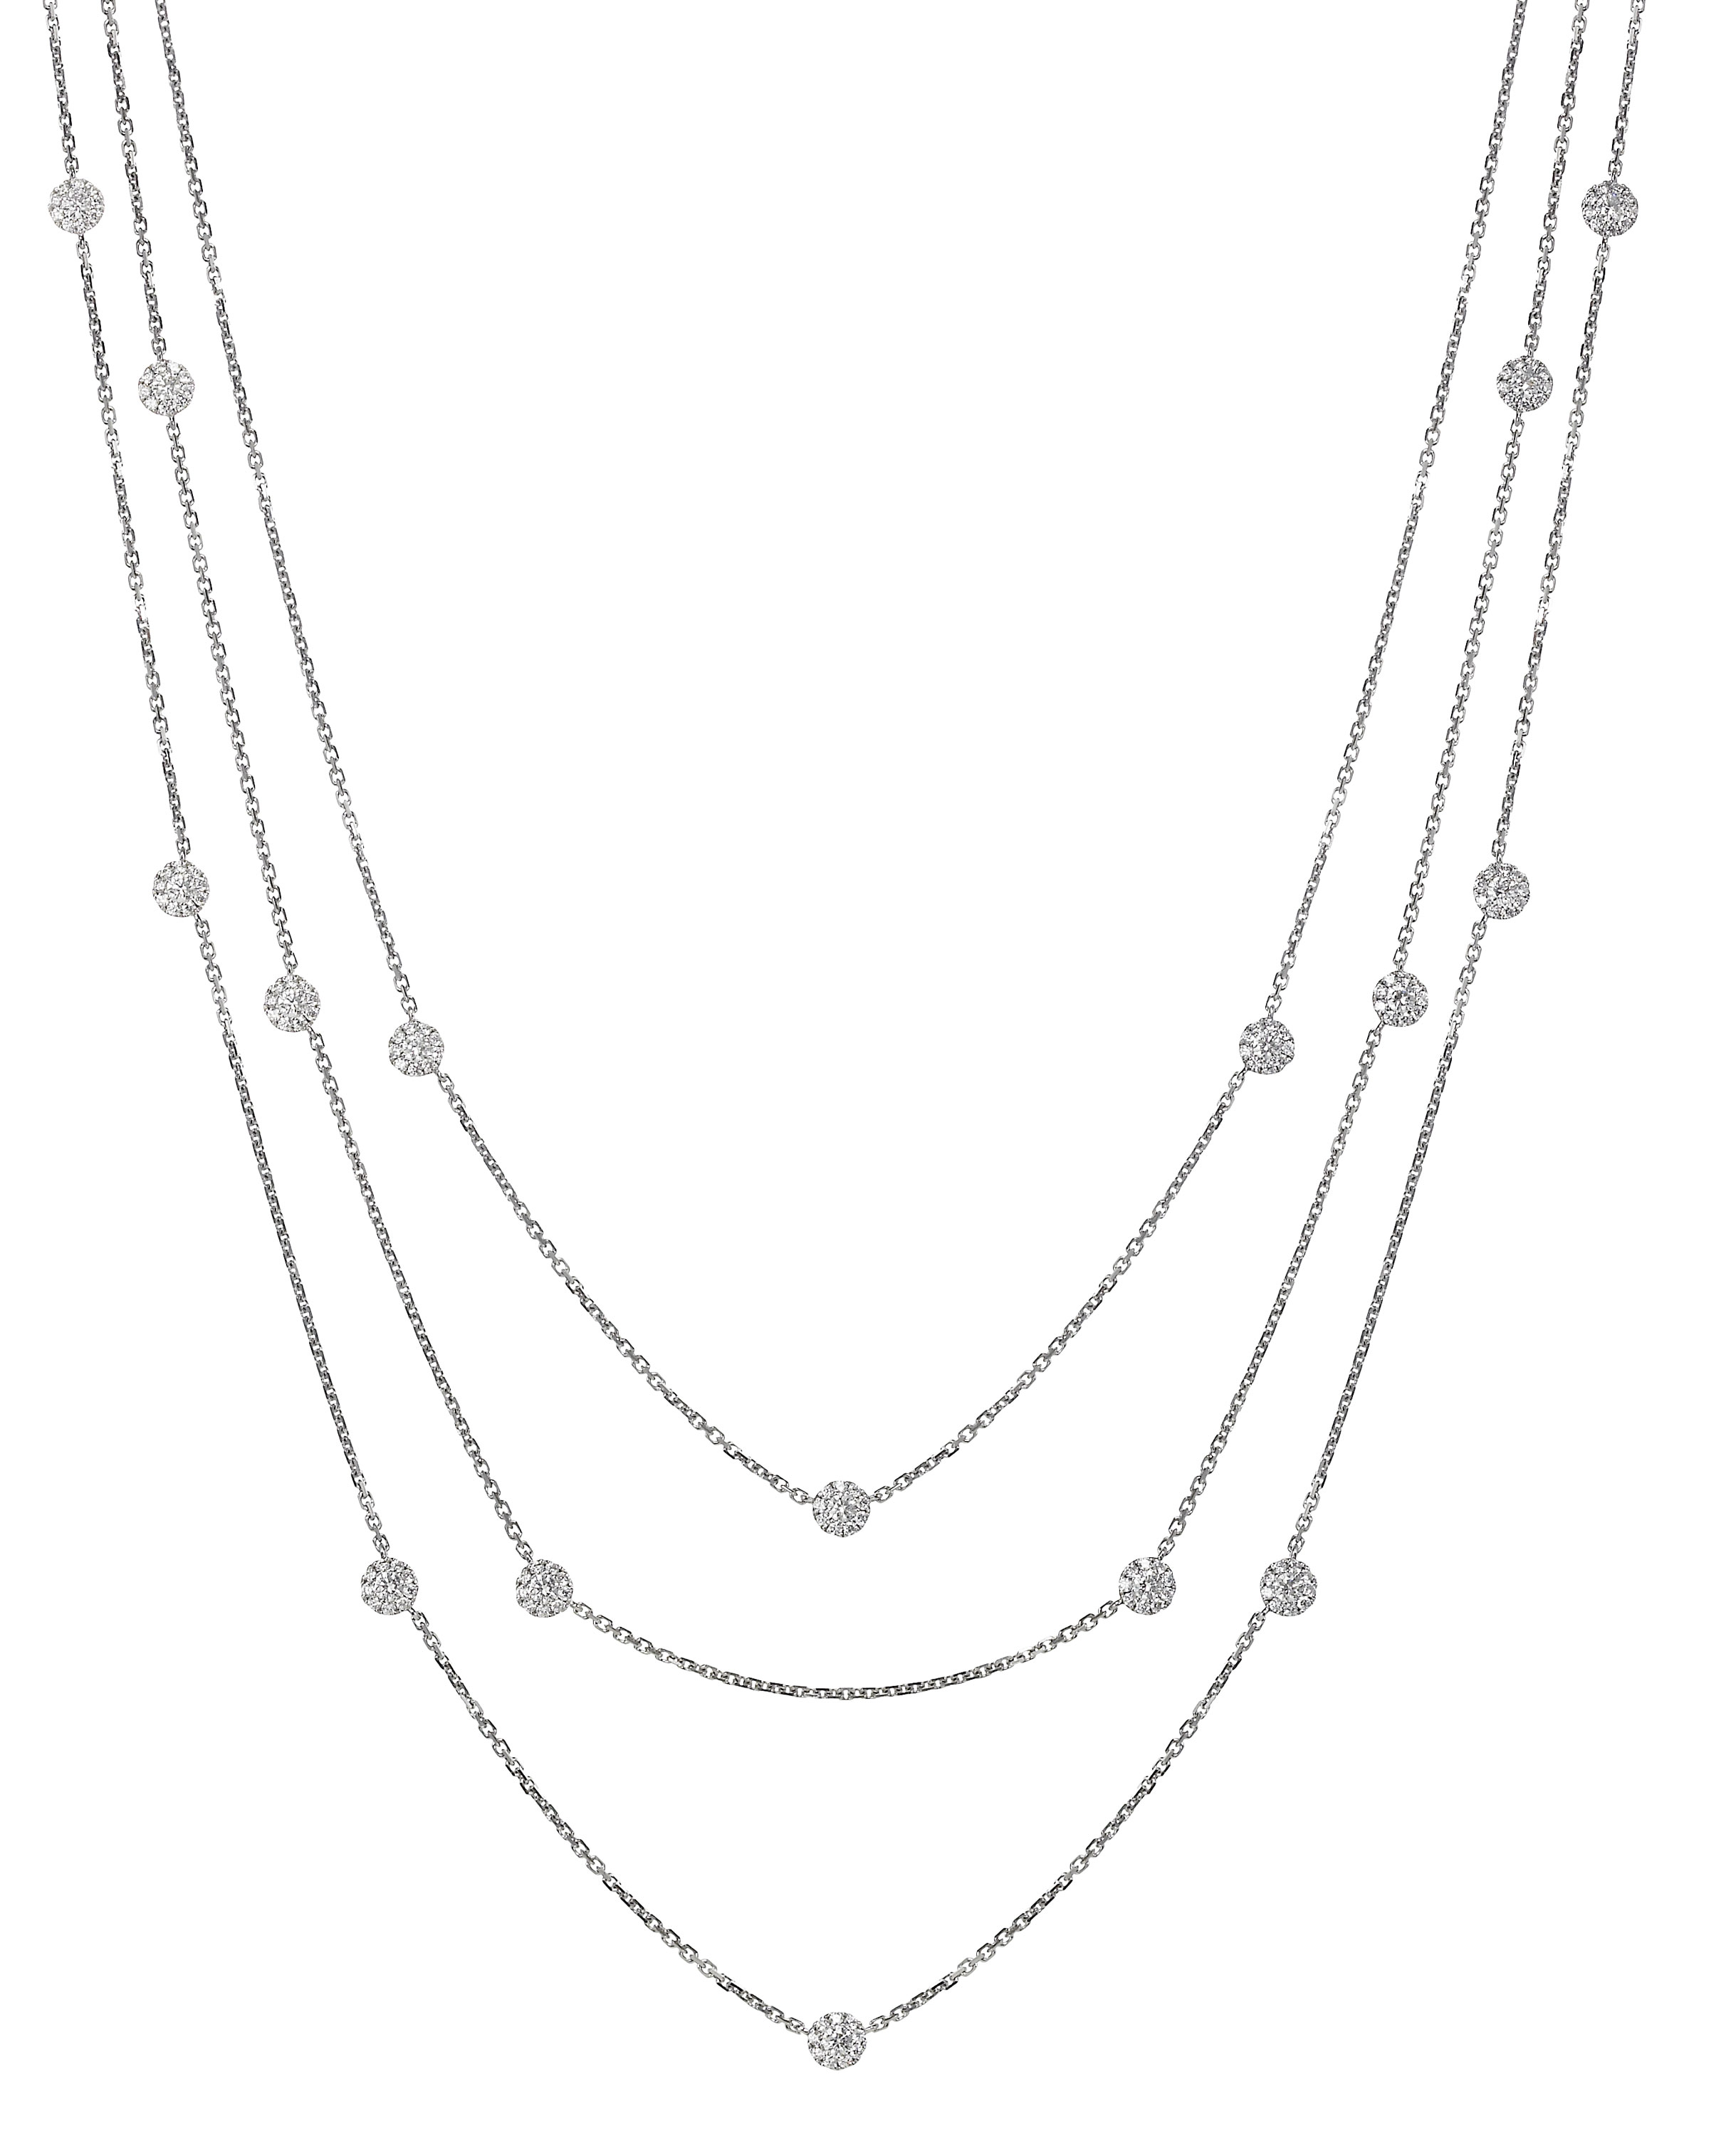 Jye Luxury Collection 3-strand diamond cluster necklace | JCK On Your Market